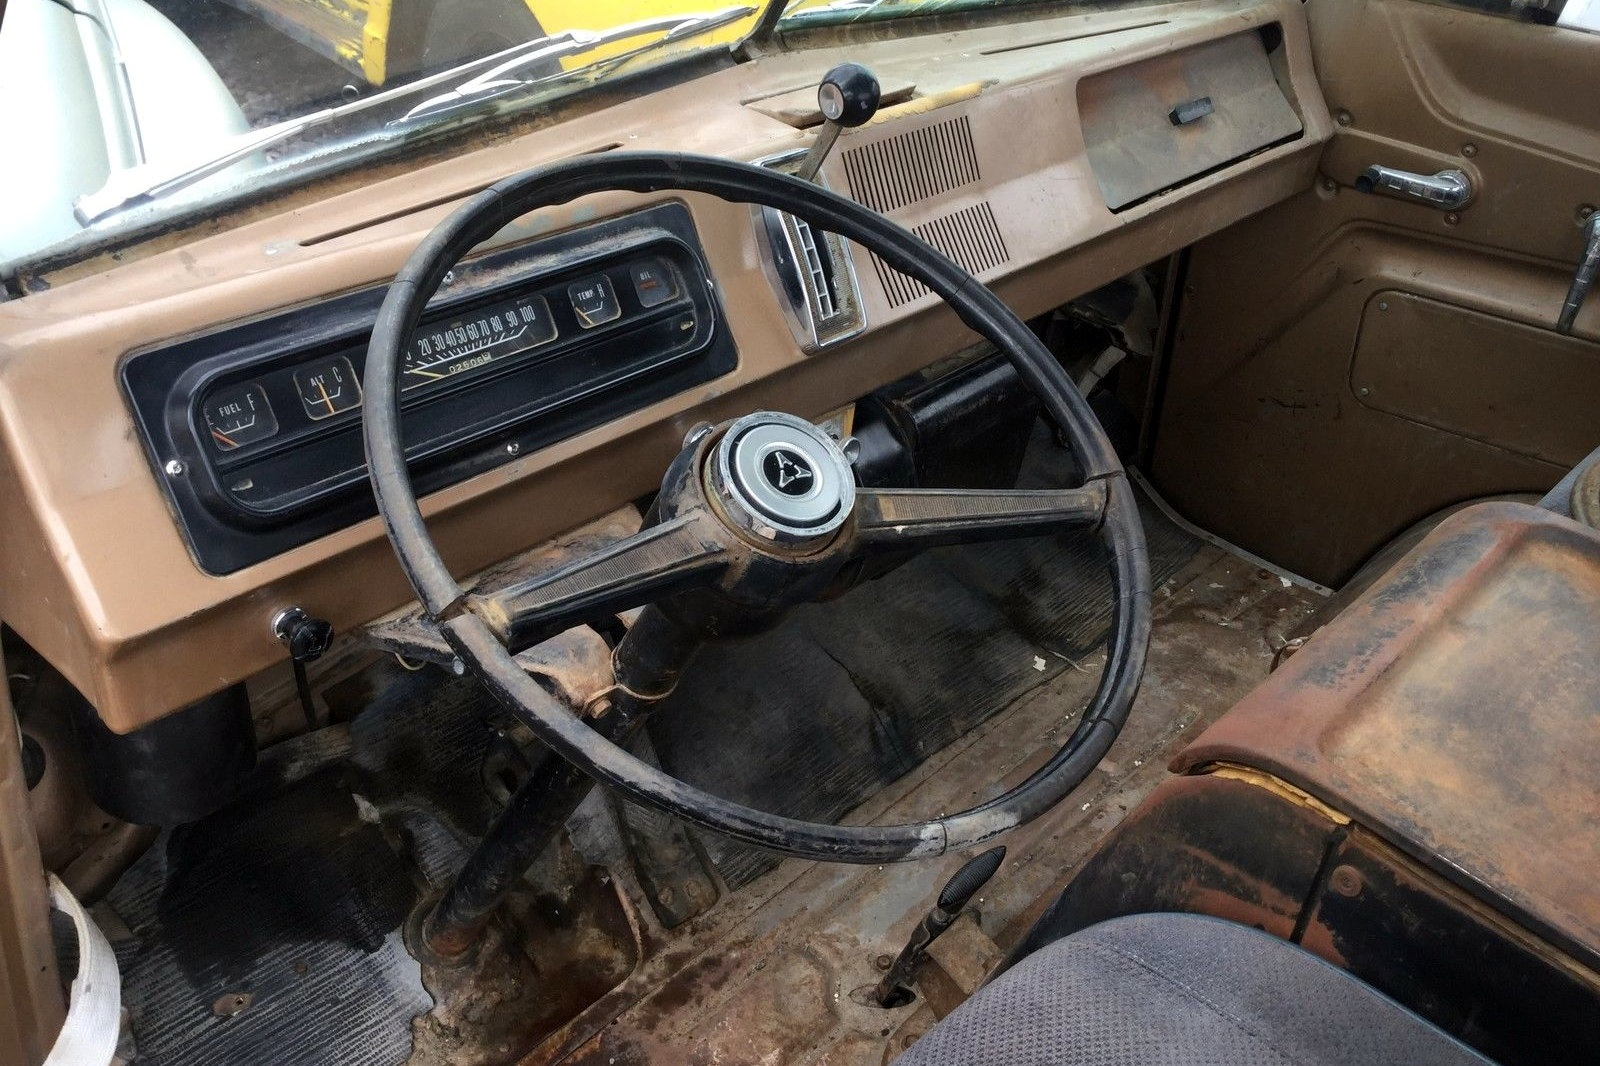 1969 Dodge Sweptline additionally Watch also Nissan Hot Girls likewise 1966 Dodge A100 Pickup likewise Watch. on 1970 dodge pickup truck